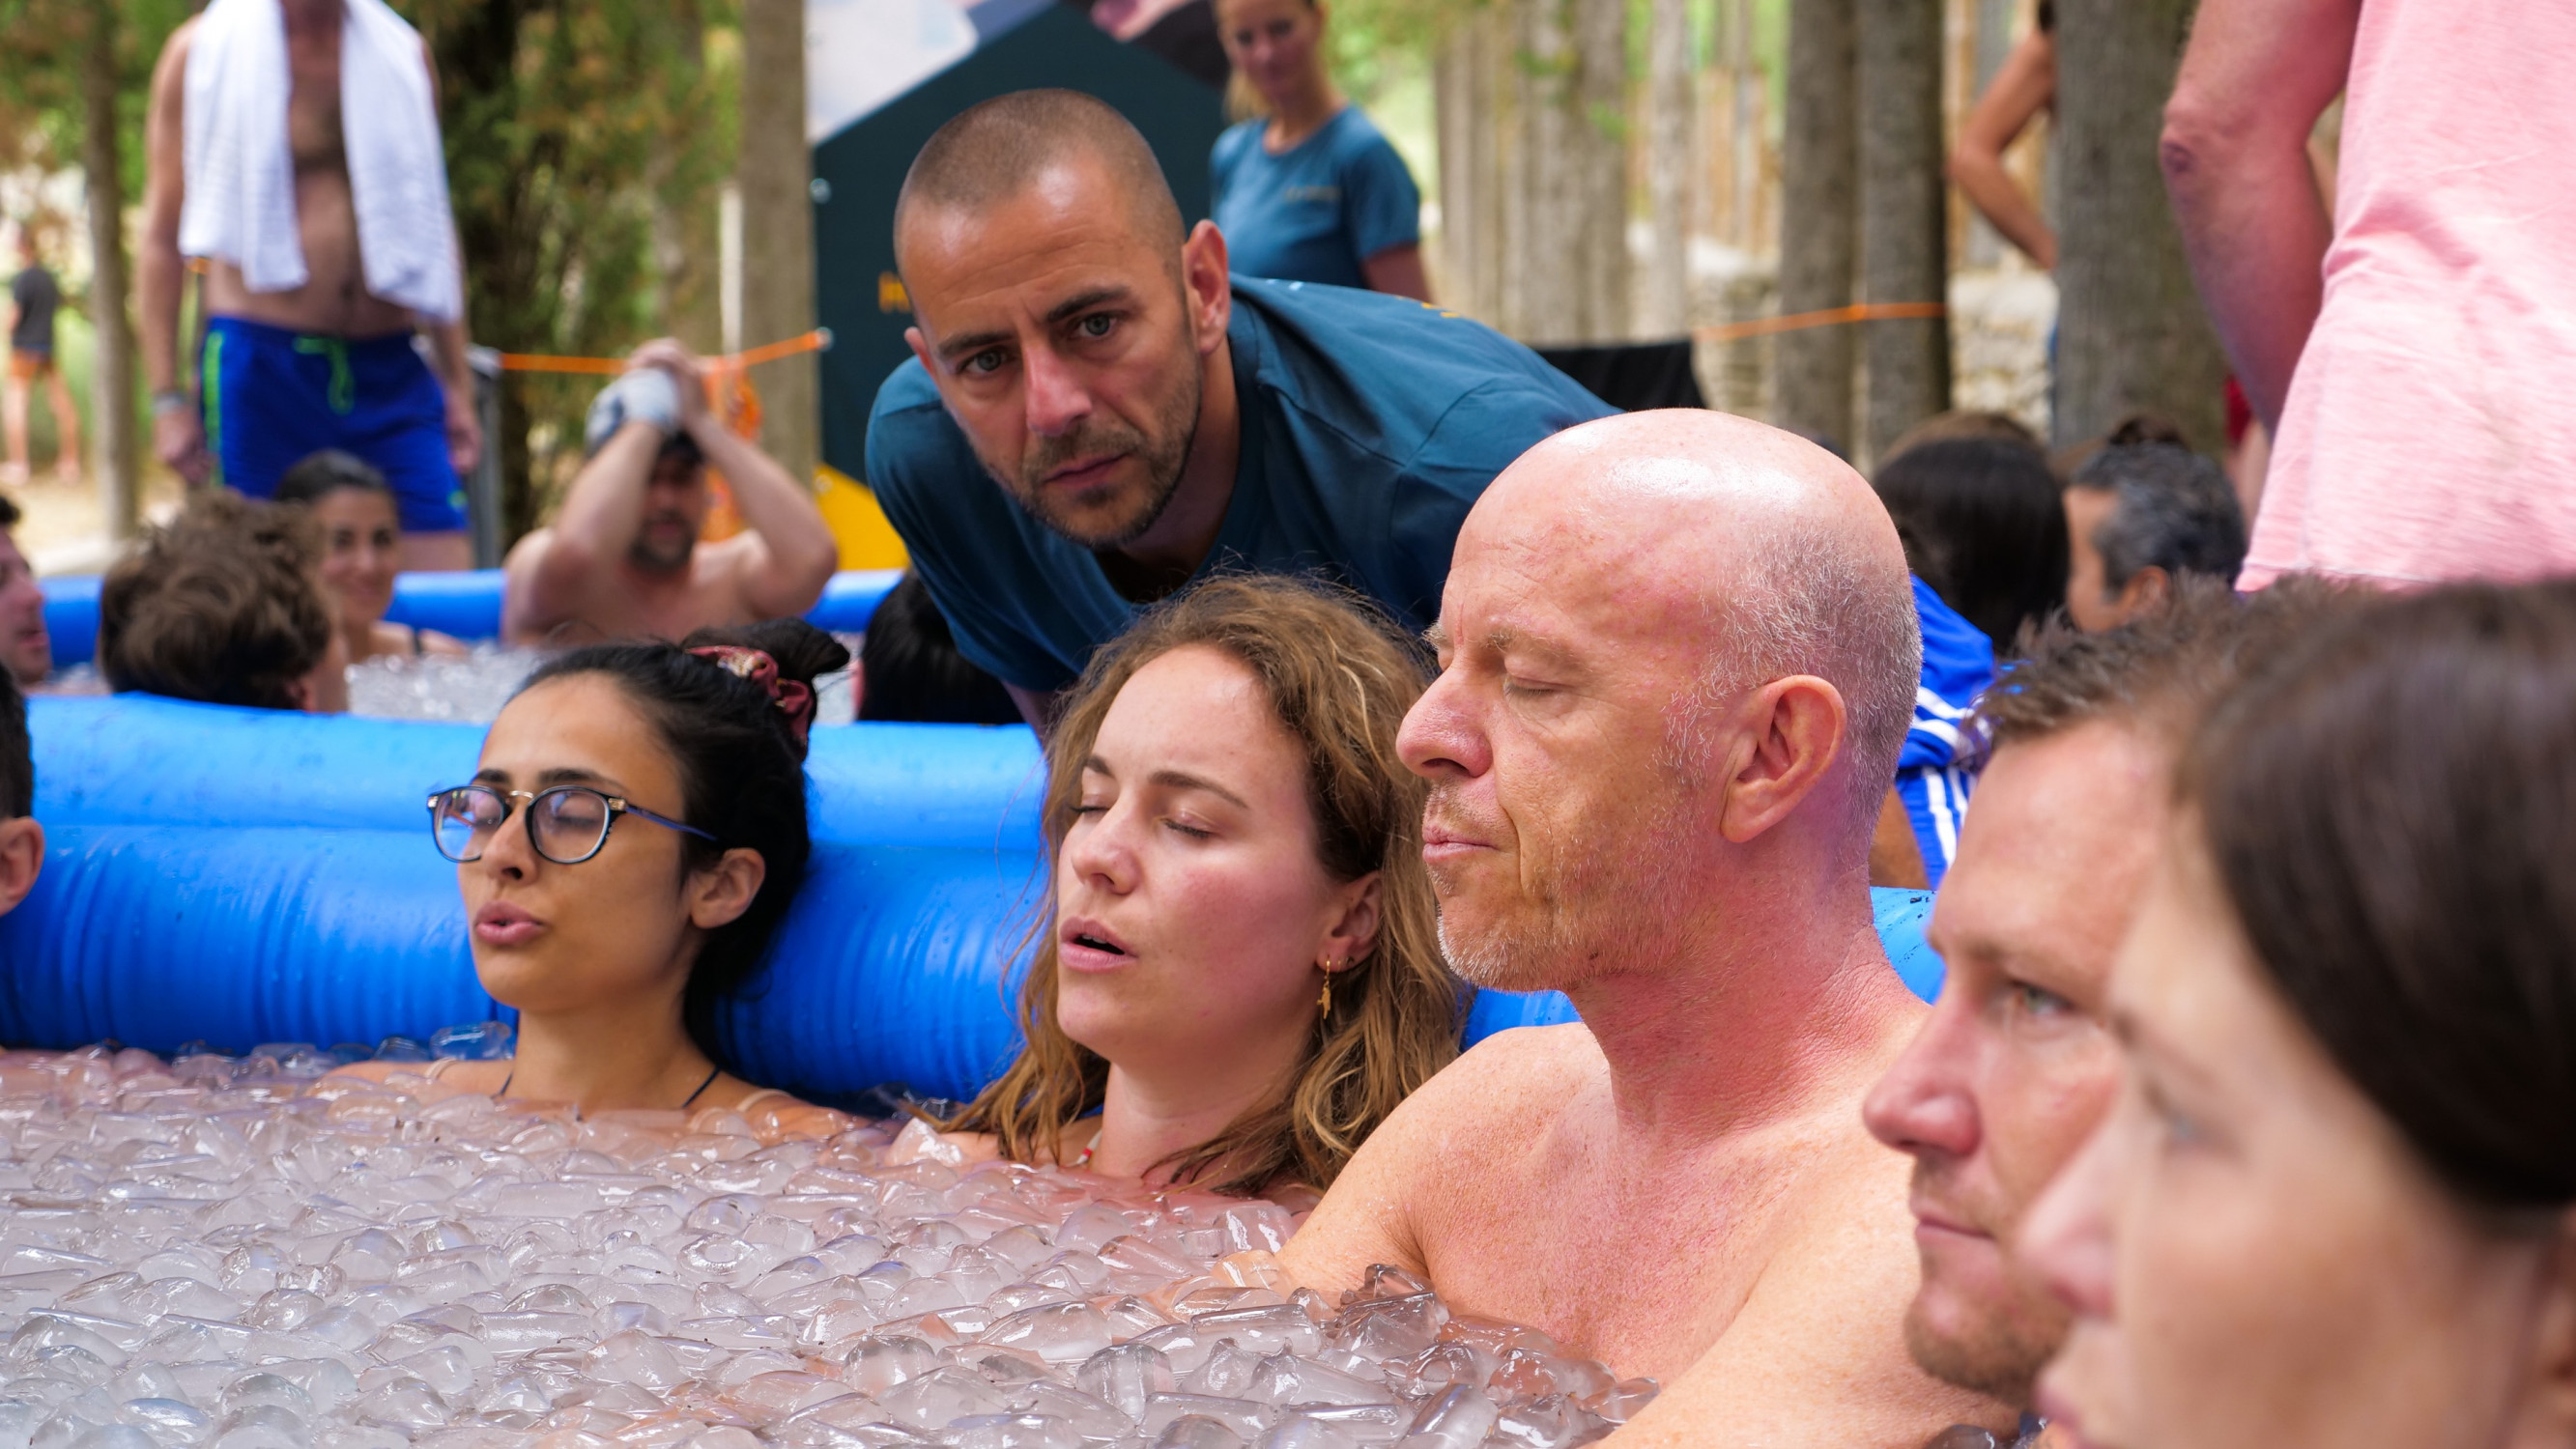 Image 9 of 27 - Experience the Wim Hof Method to get an impression of  at